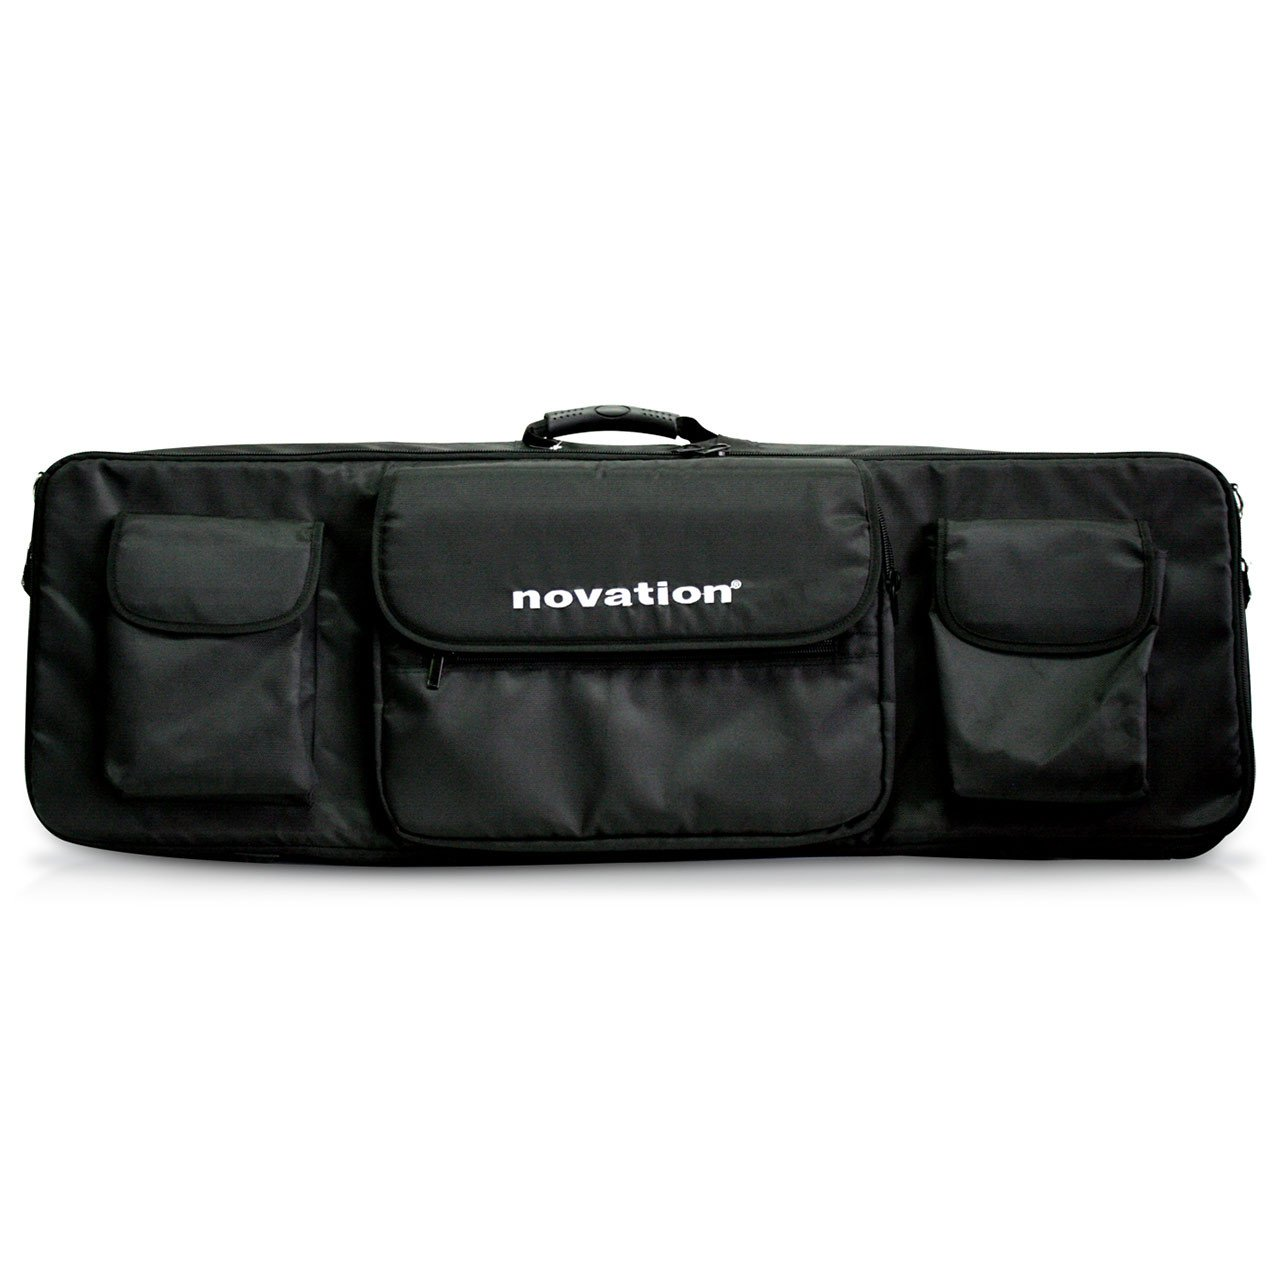 Novation 61 Key Keyboard Gig Bag